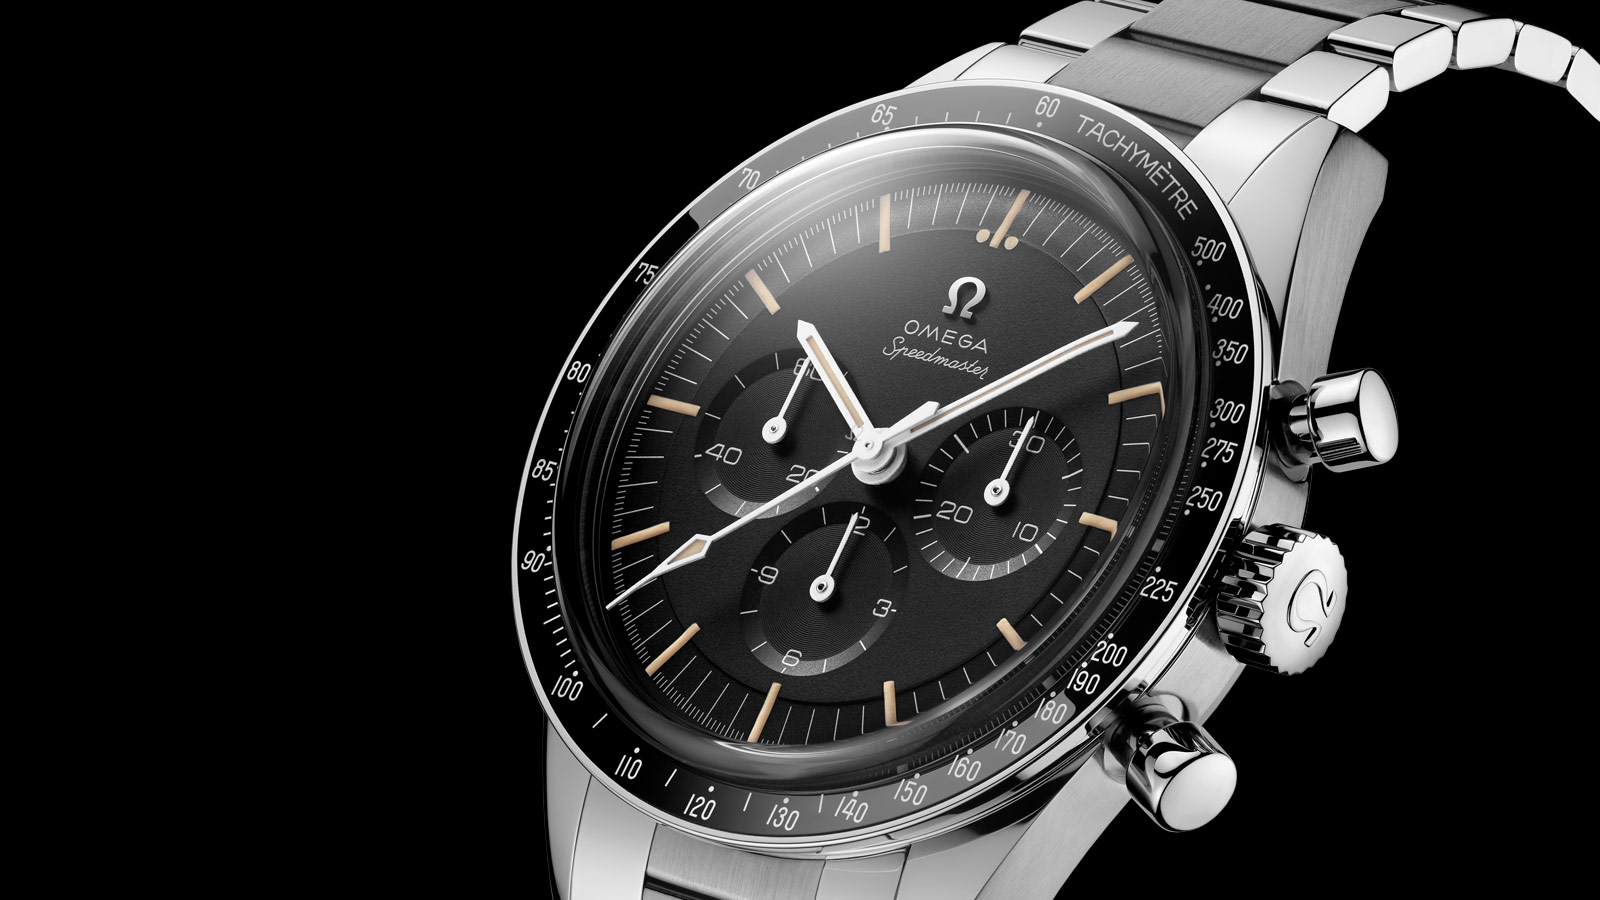 Speedmaster Moonwatch Moonwatch Chronograph 39.7 mm - 311.30.40.30.01.001 - View 1